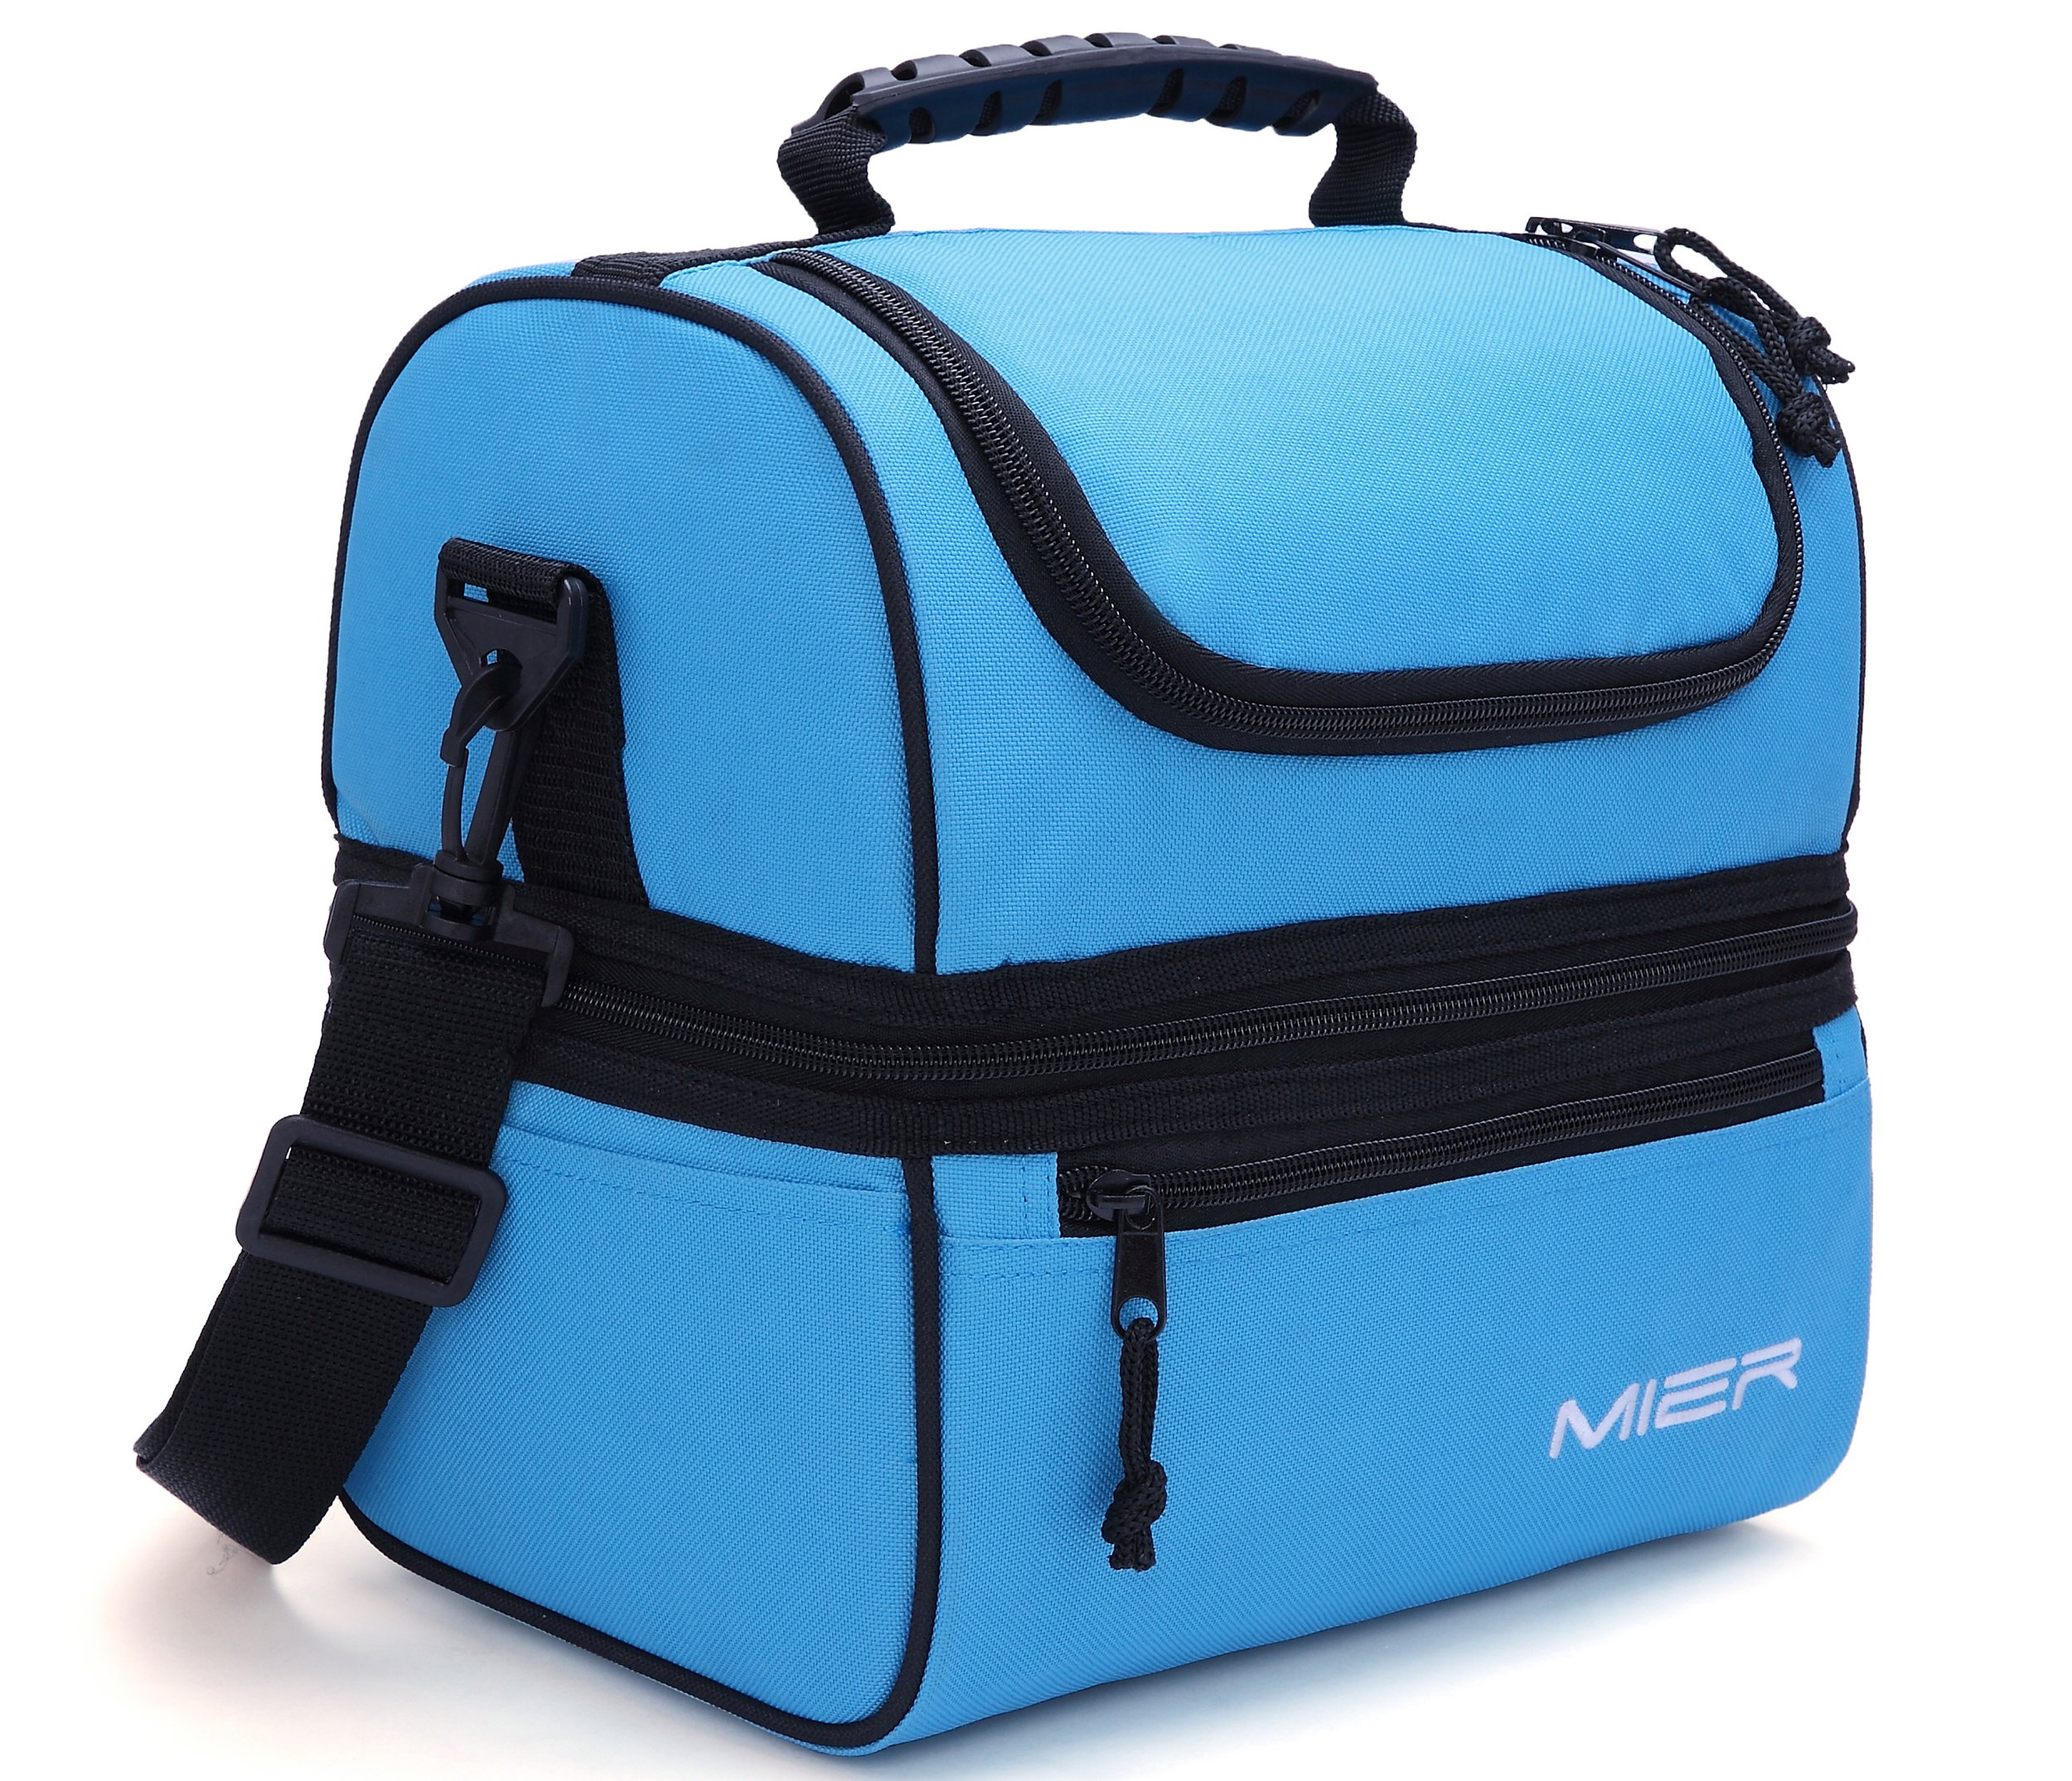 MIER Adult Lunch Box Blue Insulated Bag Large Cooler Tote For Men Women Double Deck CoolerBlue